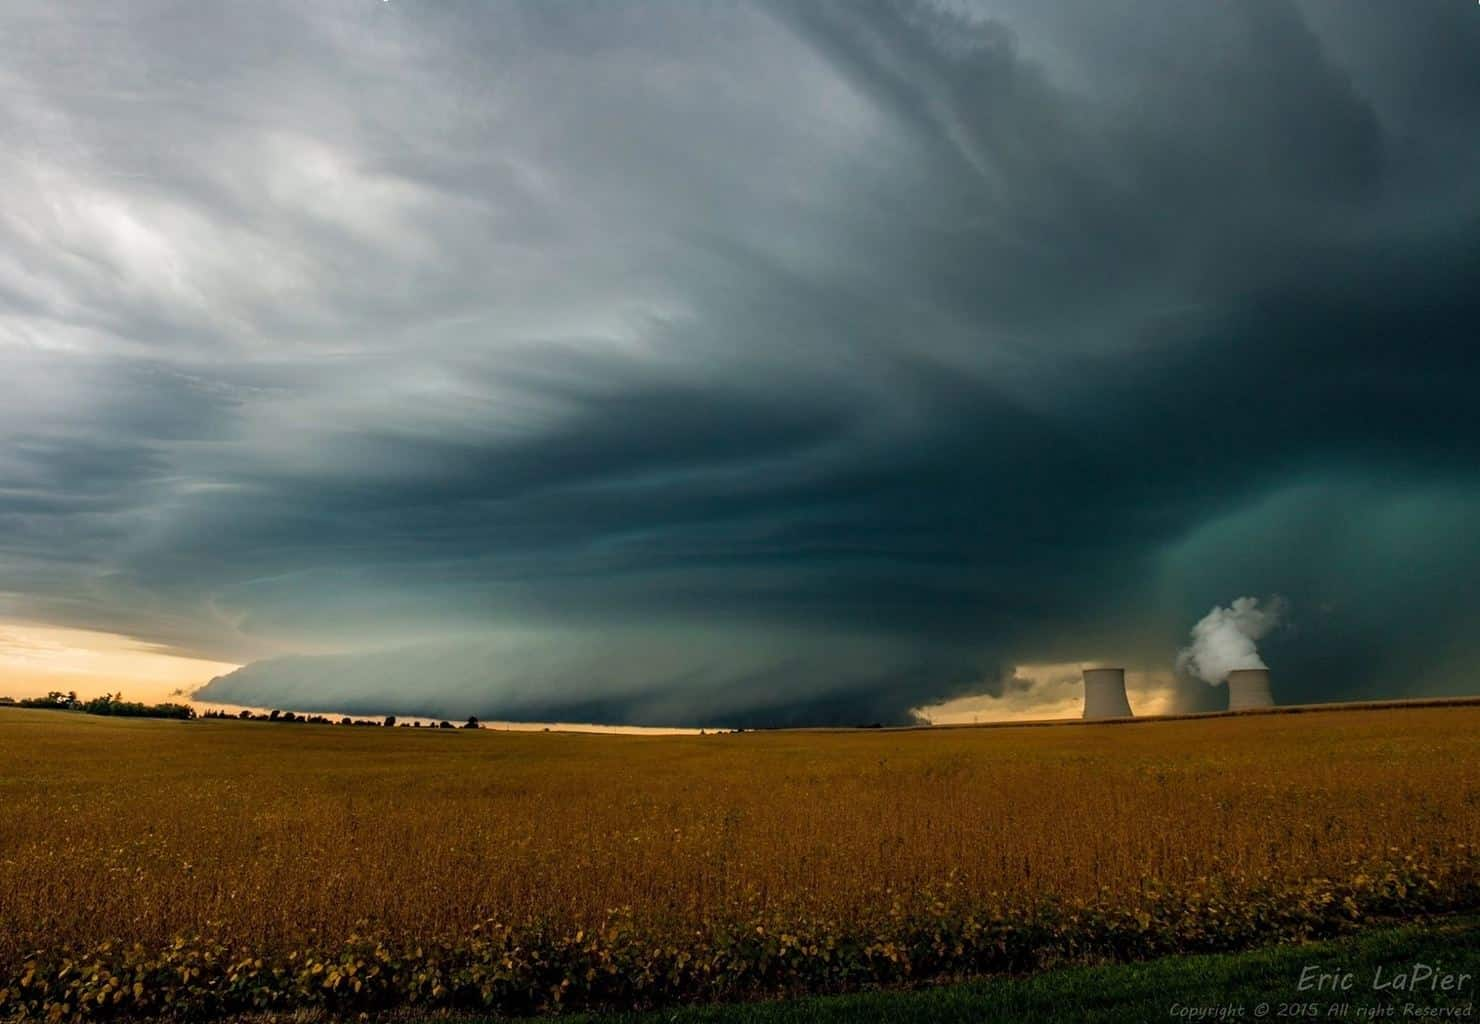 Captured this Supercell in Byron, IL on 9/17/15